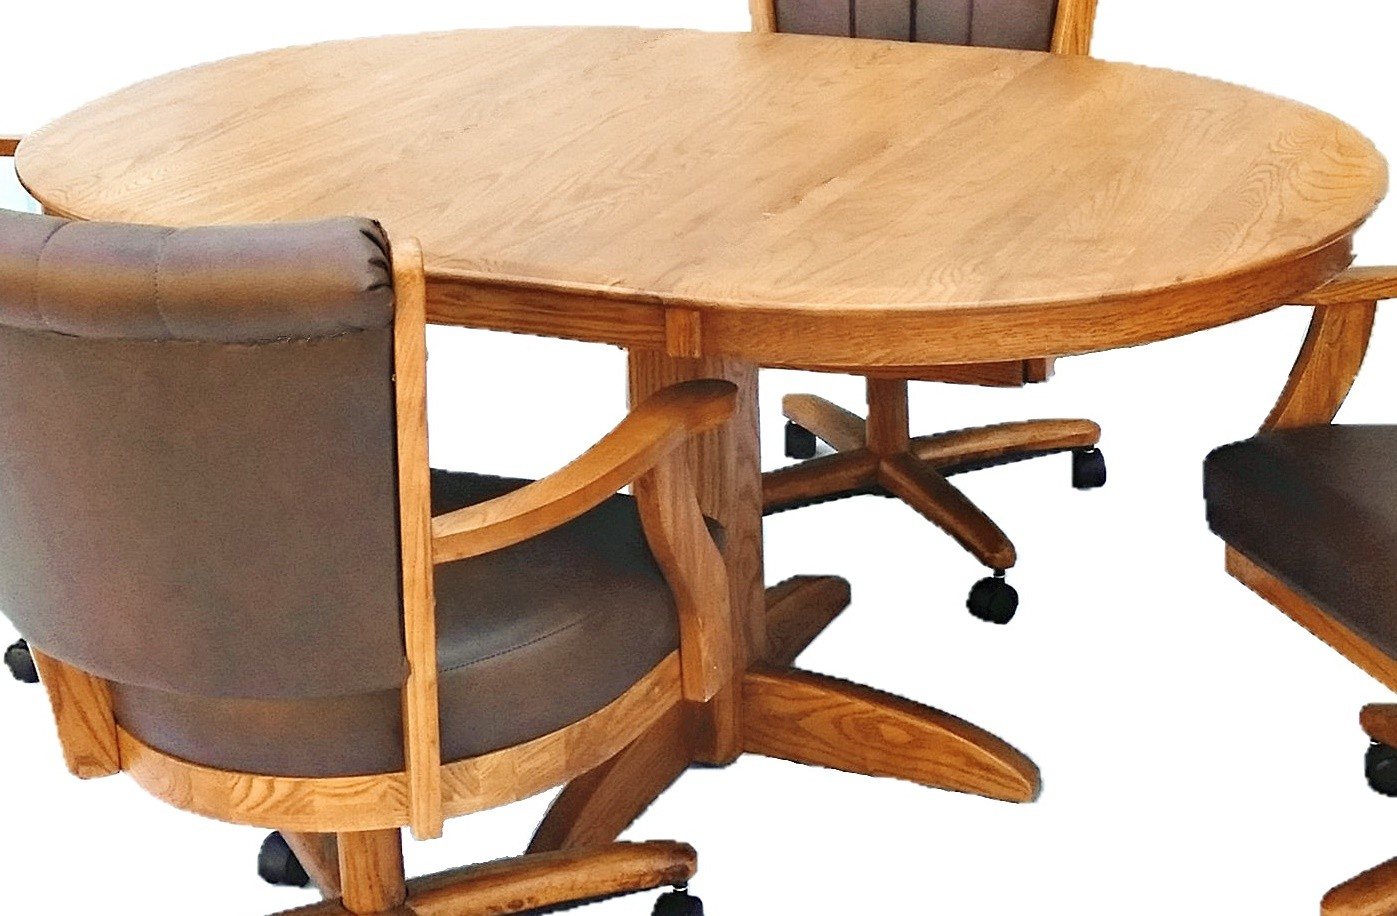 Chromcraft Furniture T250 607 Solid Wood Dinette Table  : t250607 from www.discountdinettes.com size 1397 x 916 jpeg 234kB